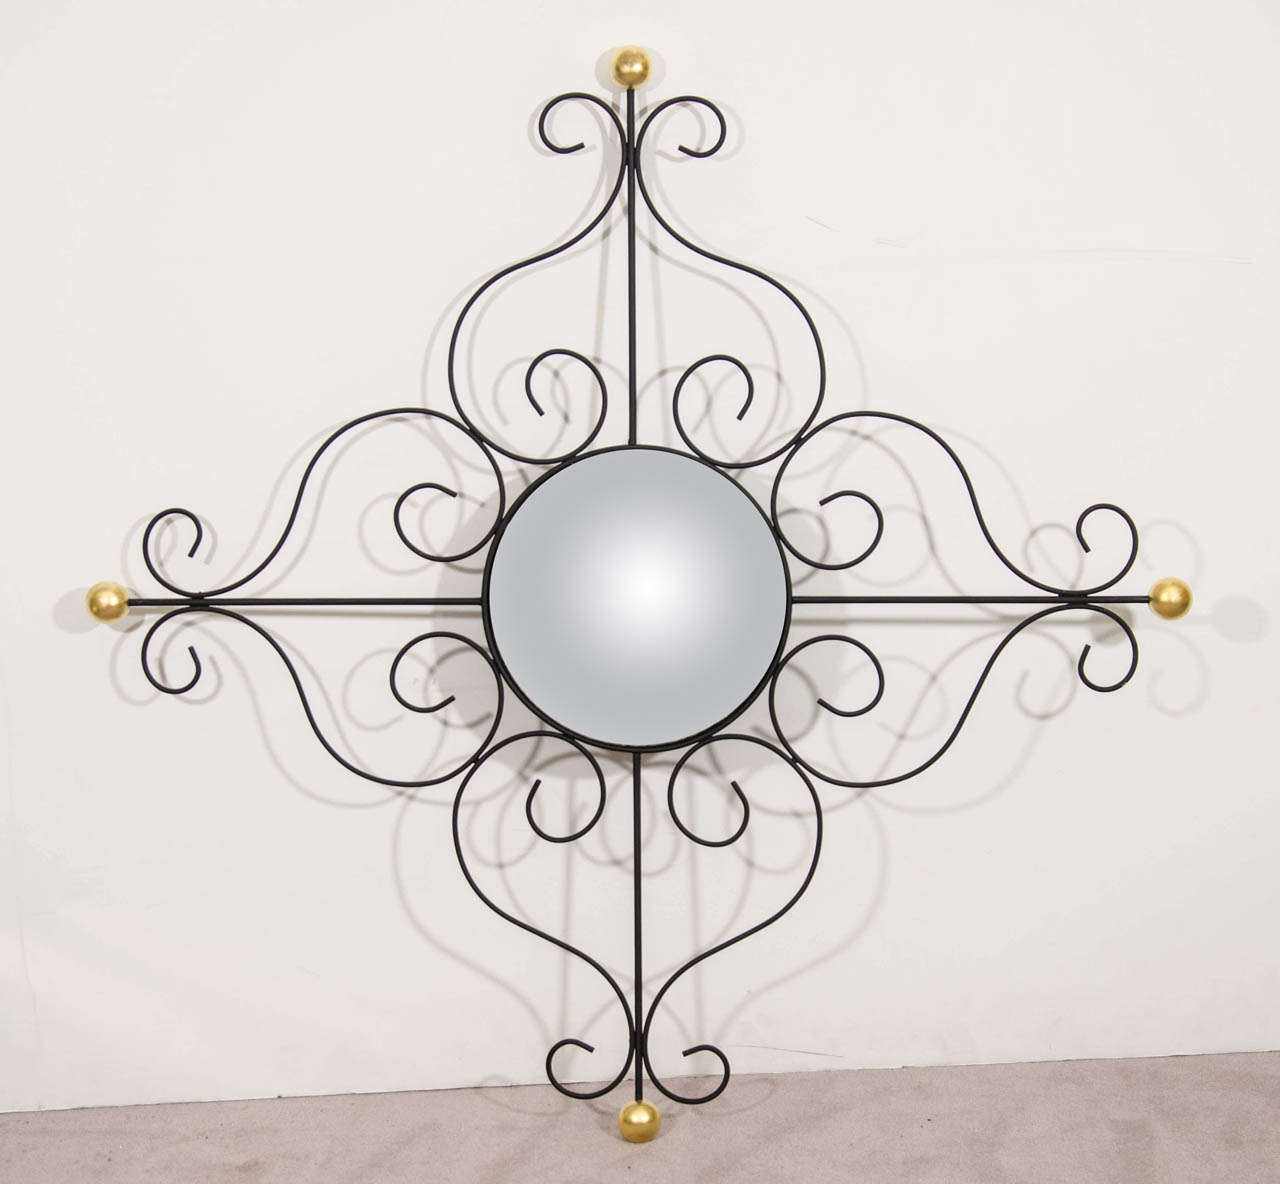 A vintage convex wall mirror with black scrolled iron frame in French modern style with 18-karat gold leaf ball accents.